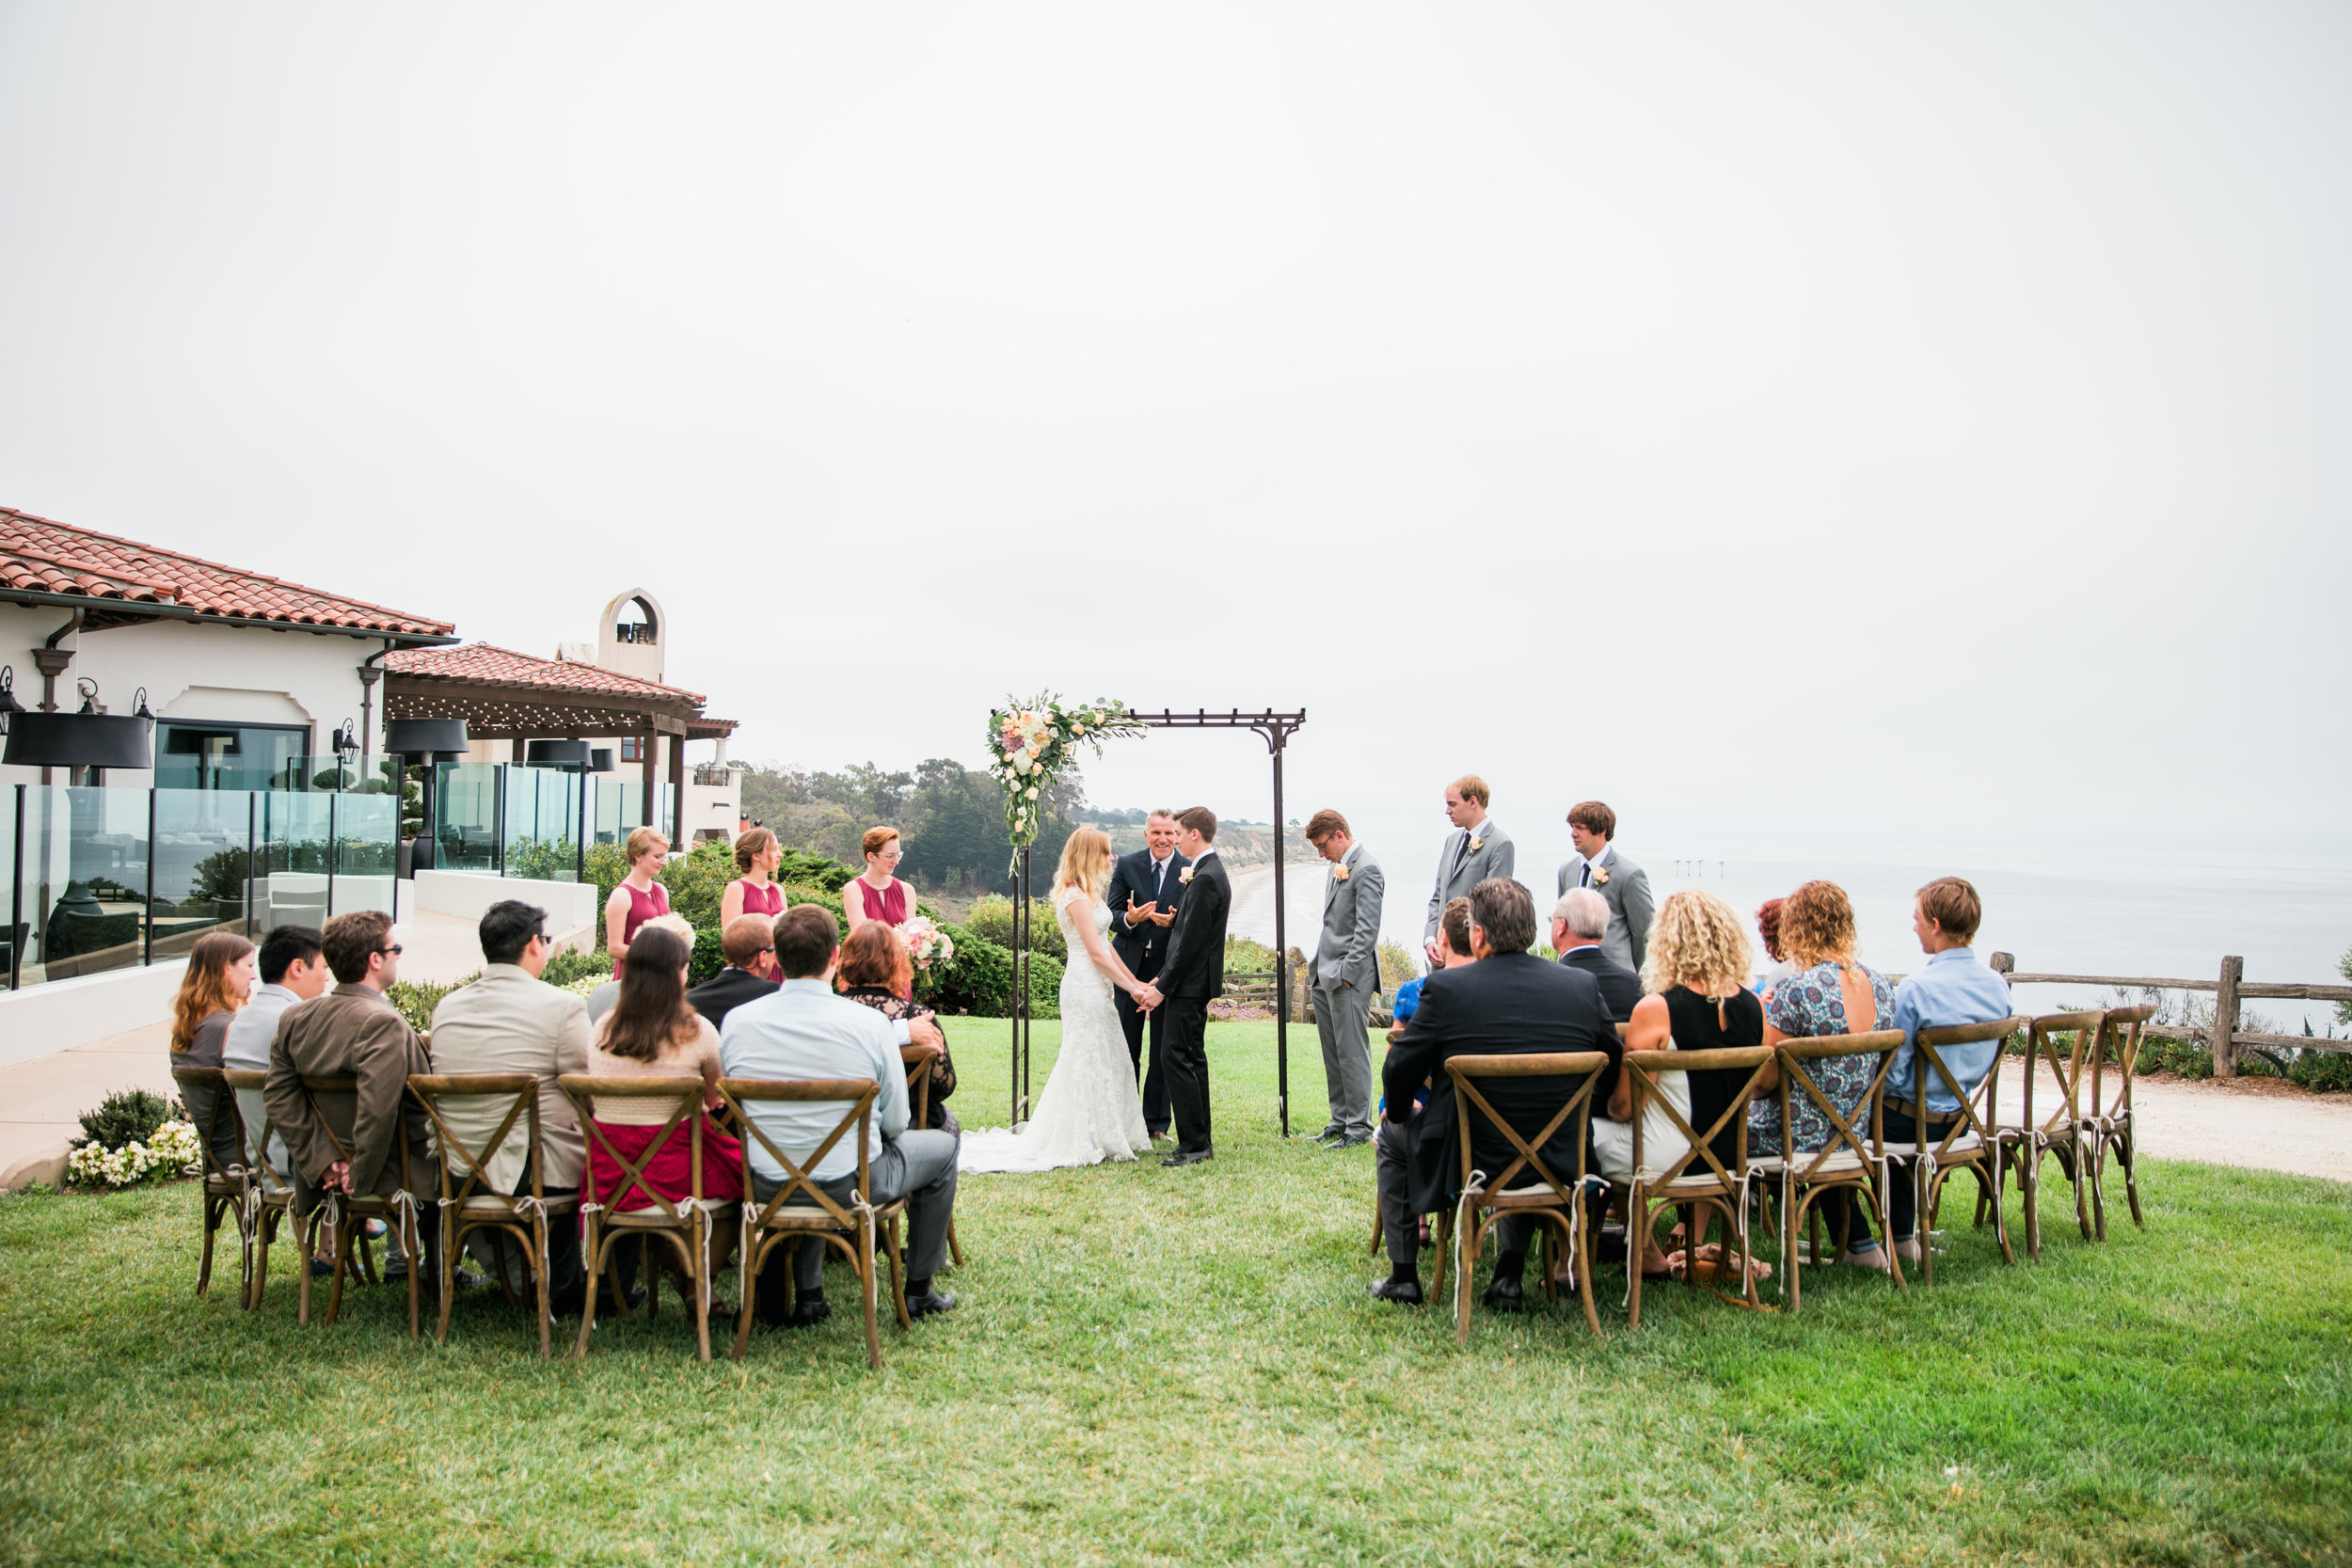 santa-barbara-elopement-elope-wedding-planner-event-design-alegria-coordinator-day-of-bacara-resort-ritz-carlton-beach-front-ocean-view-cliff-bluff (7).jpg